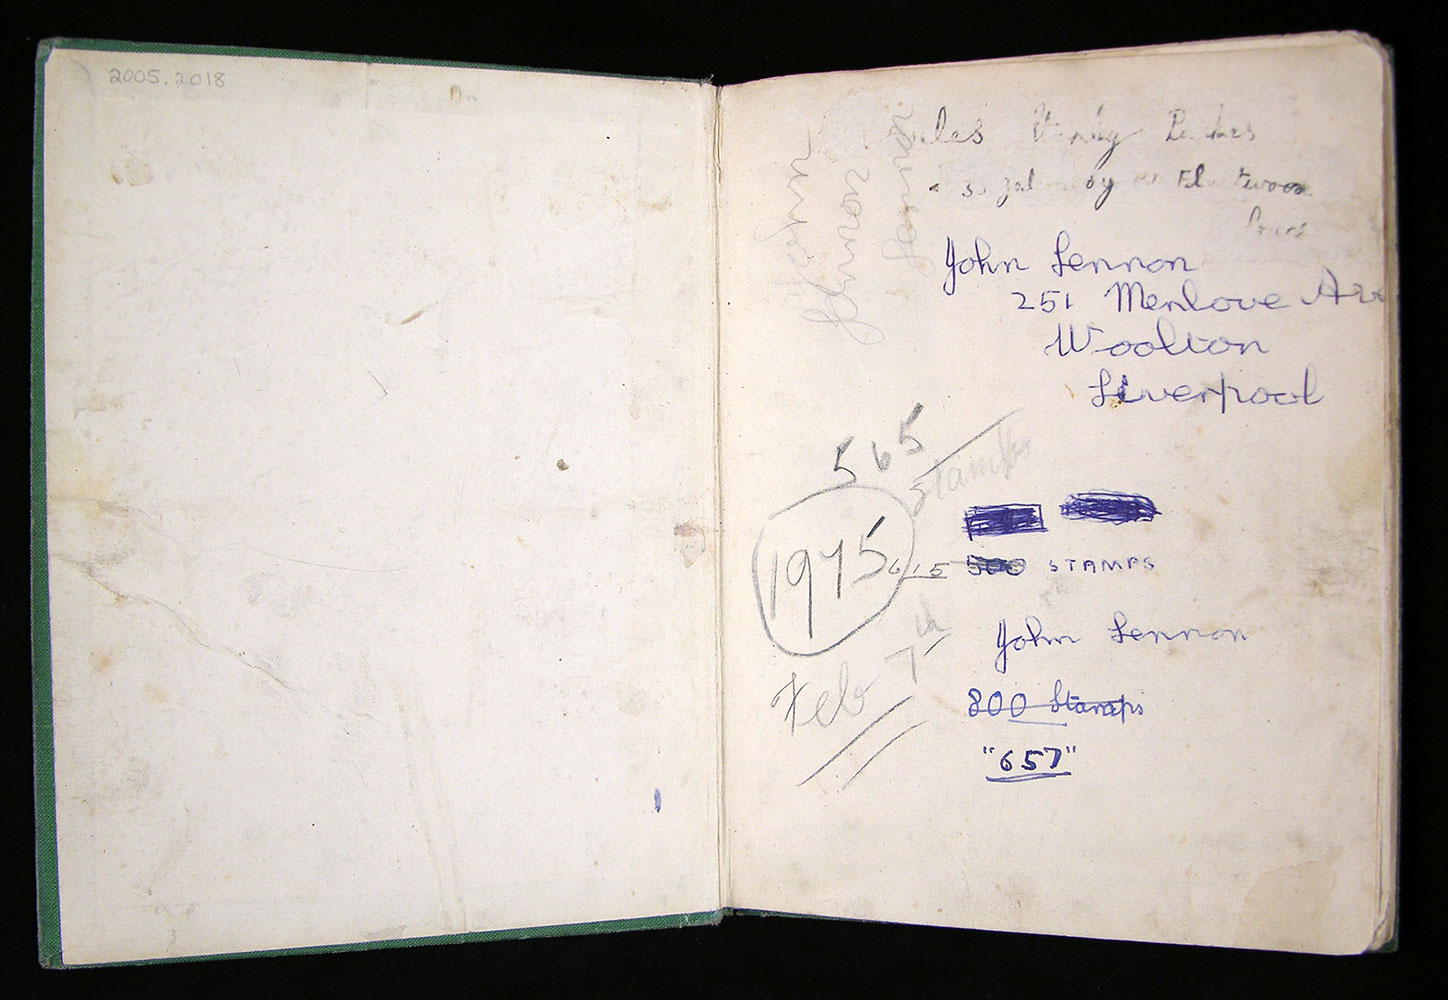 Front flyleaf of John Lennon's stamp album where he wrote his name and address and kept wrote the total number of stamps contained within.